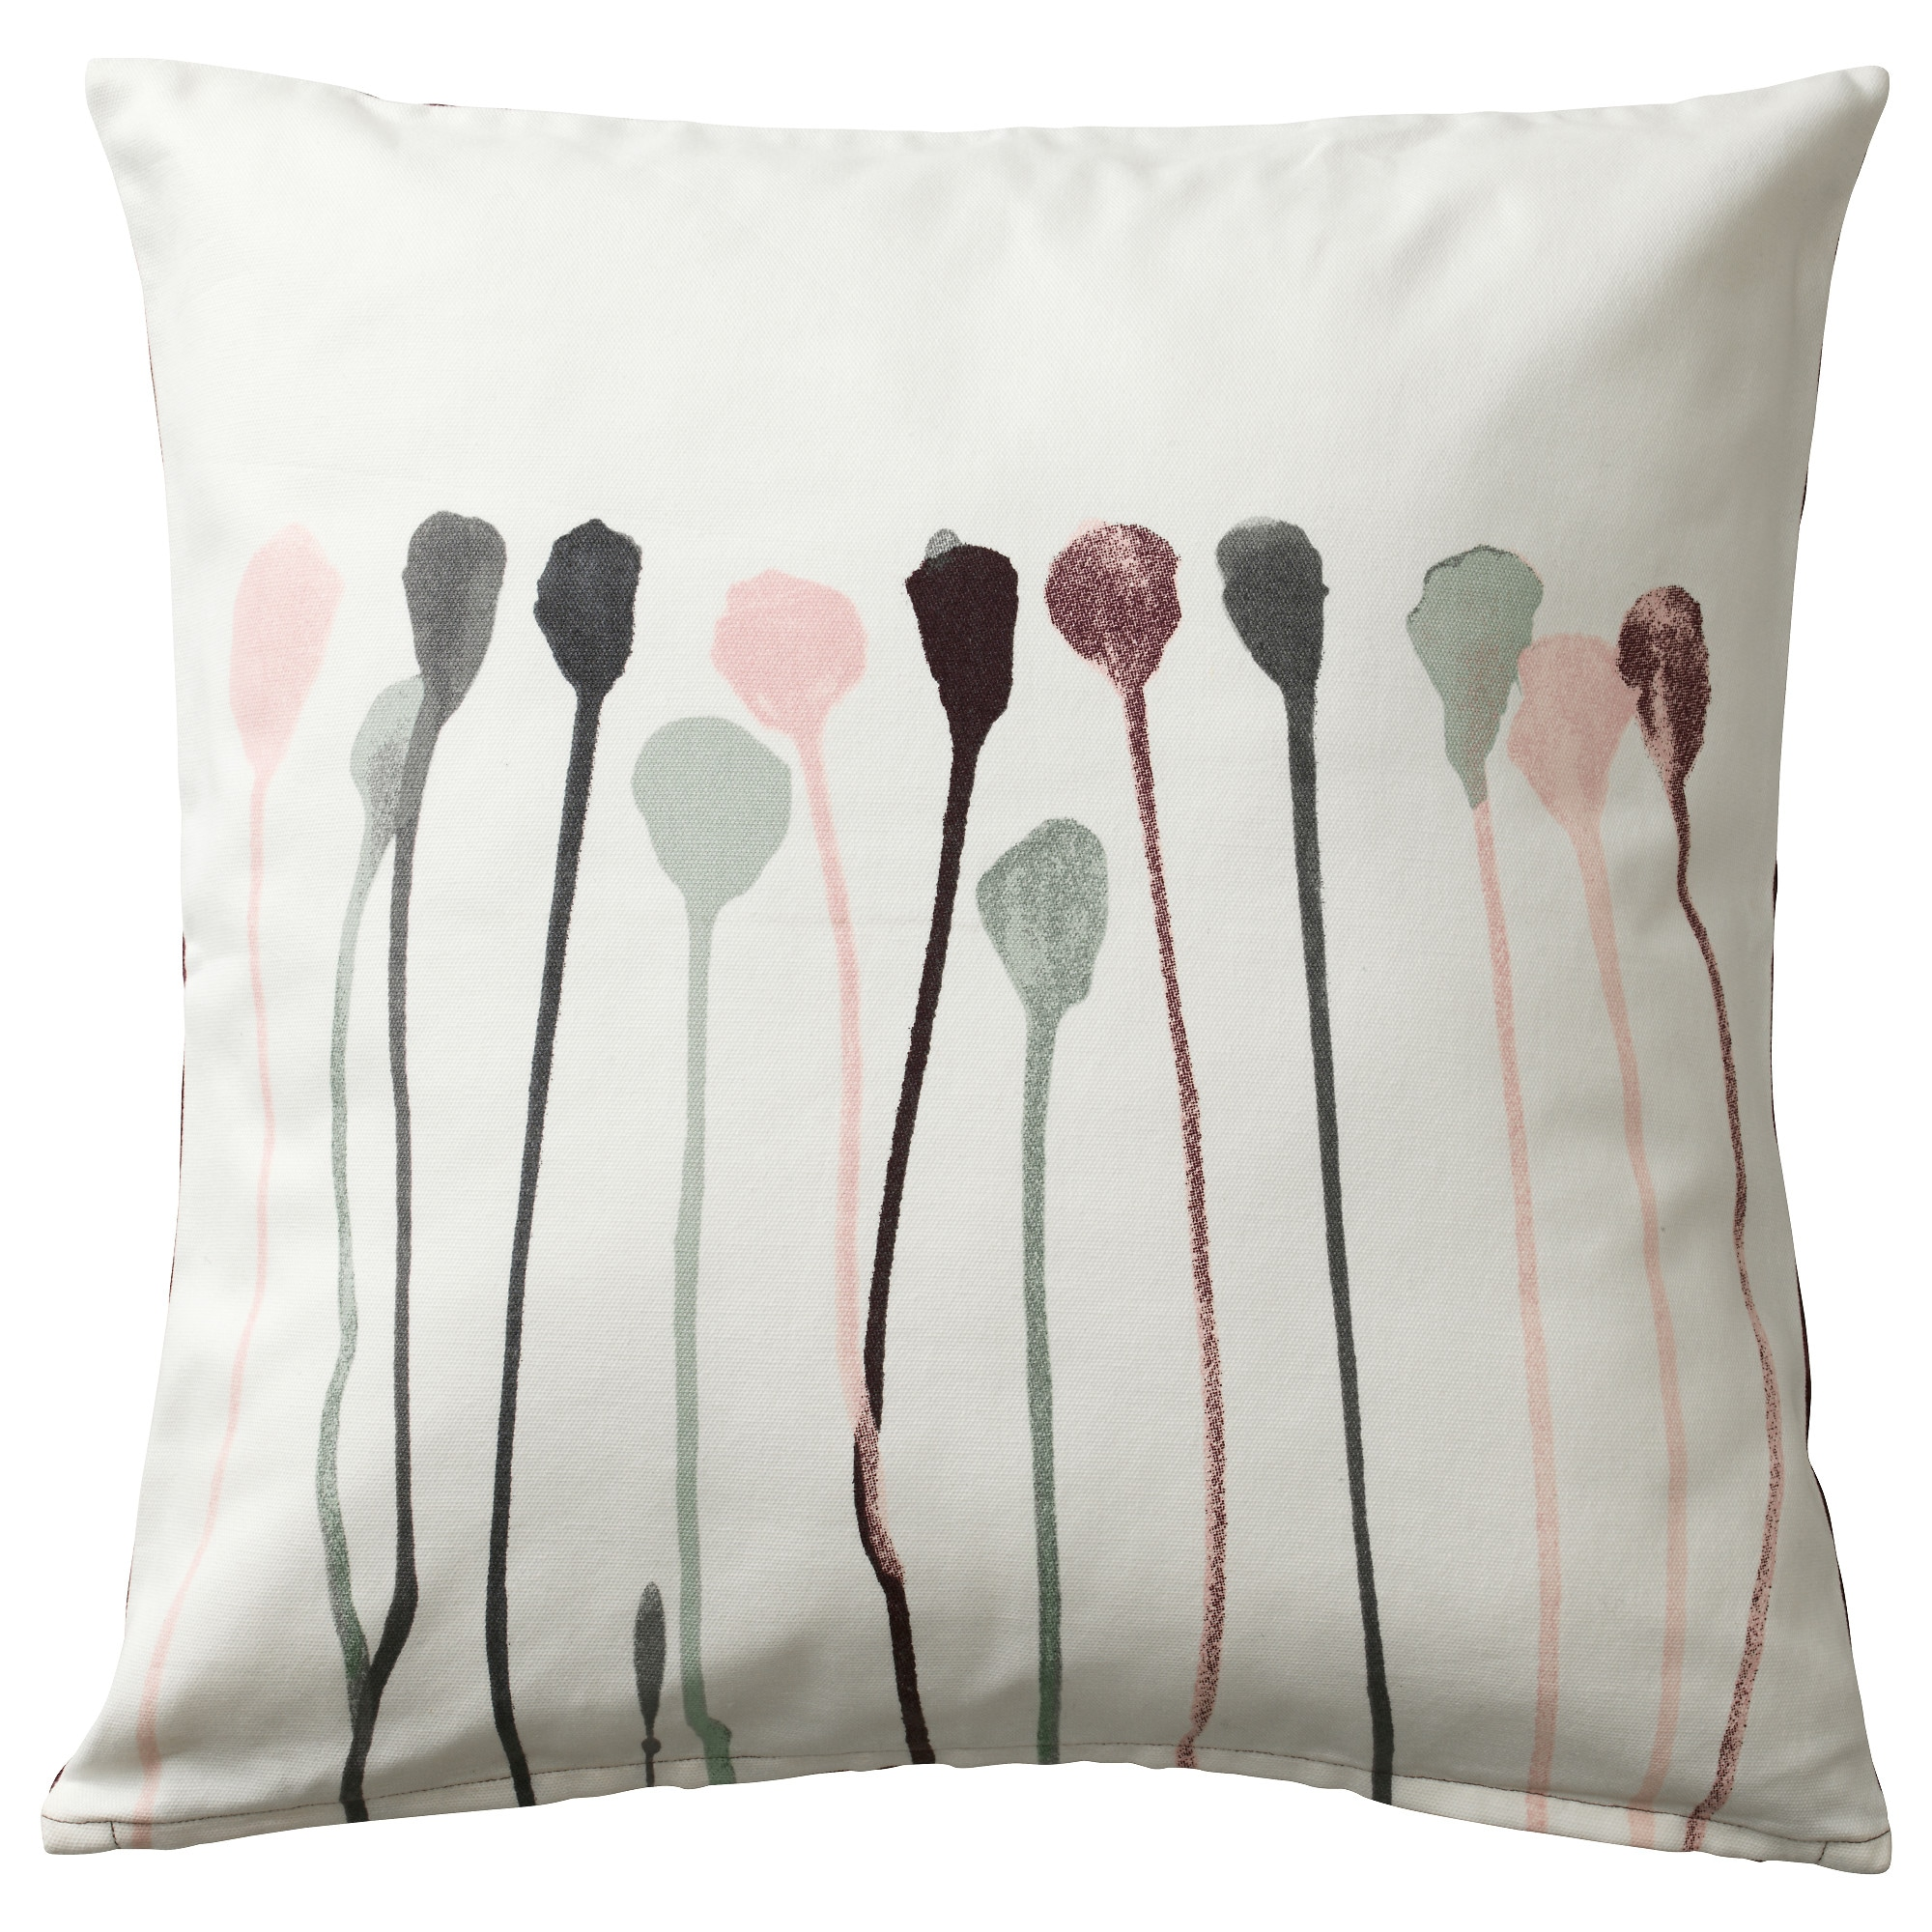 SKOGSNVA cushion cover, beige, pink Length: 20